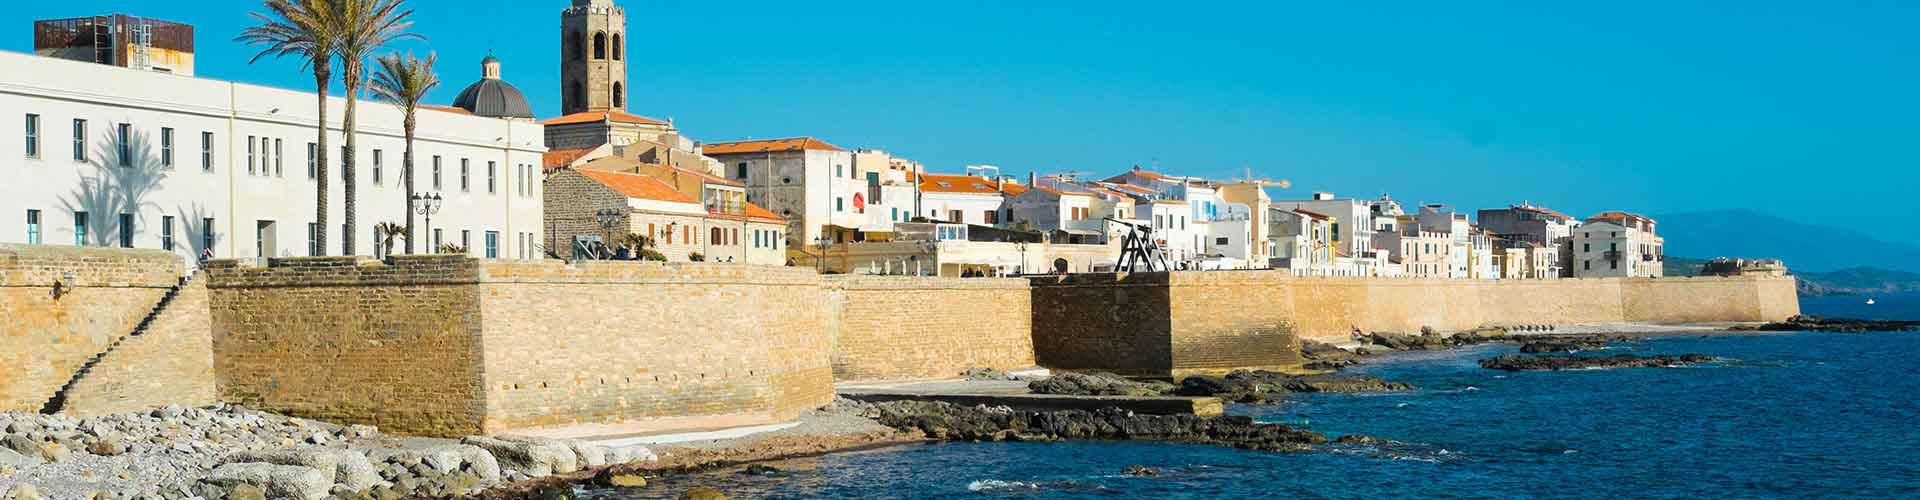 Alghero – Hostels in Alghero. Maps for Alghero, Photos and Reviews for each hostel in Alghero.